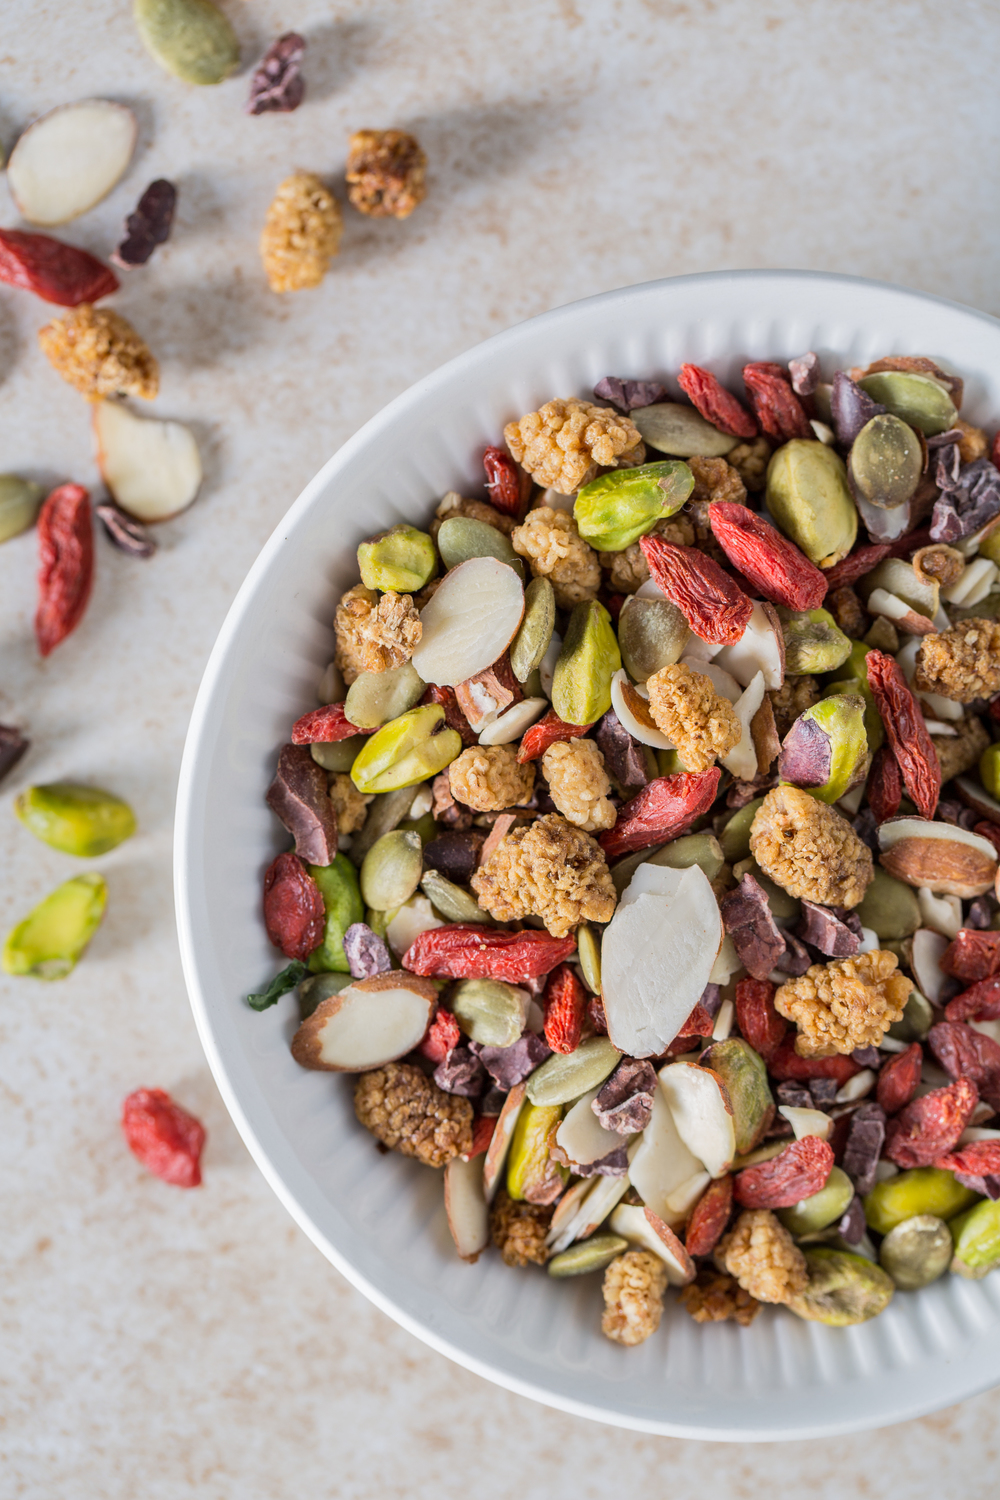 Homemade Trail Mix. Photo by Sarah Crowder.